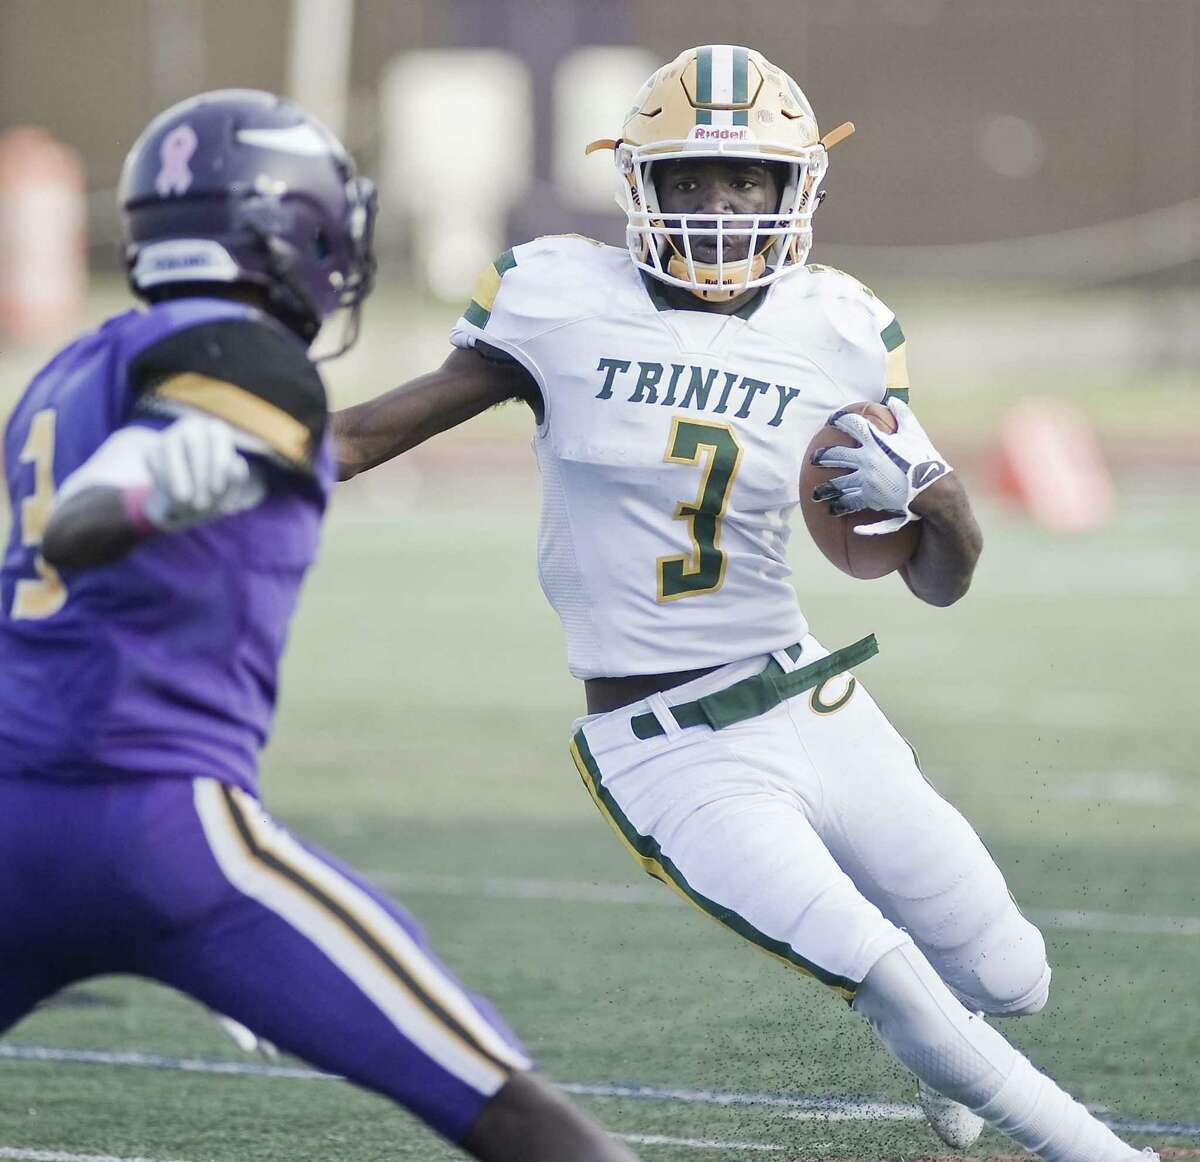 Trinity Catholic's Tahj Morgan looks for an opening during a game against host Westhill on Friday in Stamford. Trinity Catholic topped city rival Westhill, 22-7.